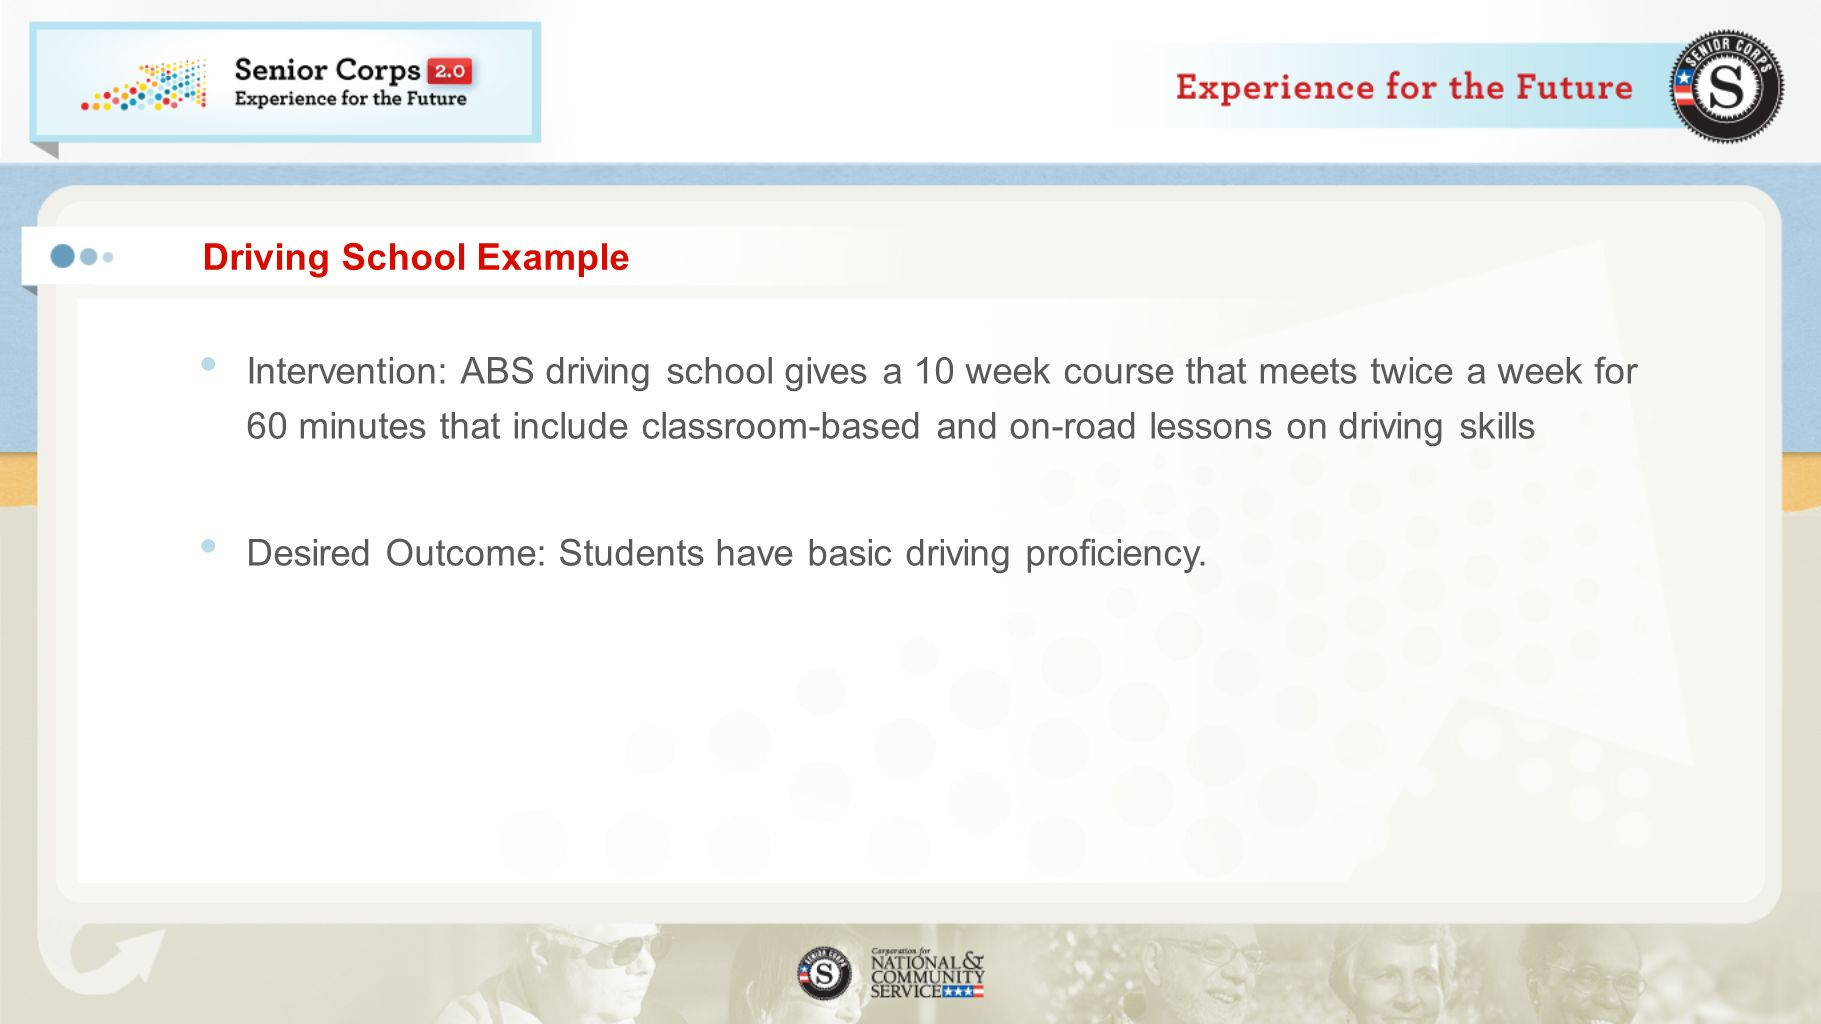 Driving School Example Intervention: ABS driving school gives a 10 week course that meets twice a week for 60 minutes that include classroom-based and on-road lessons on driving skills Desired Outcome: Students have basic driving proficiency.